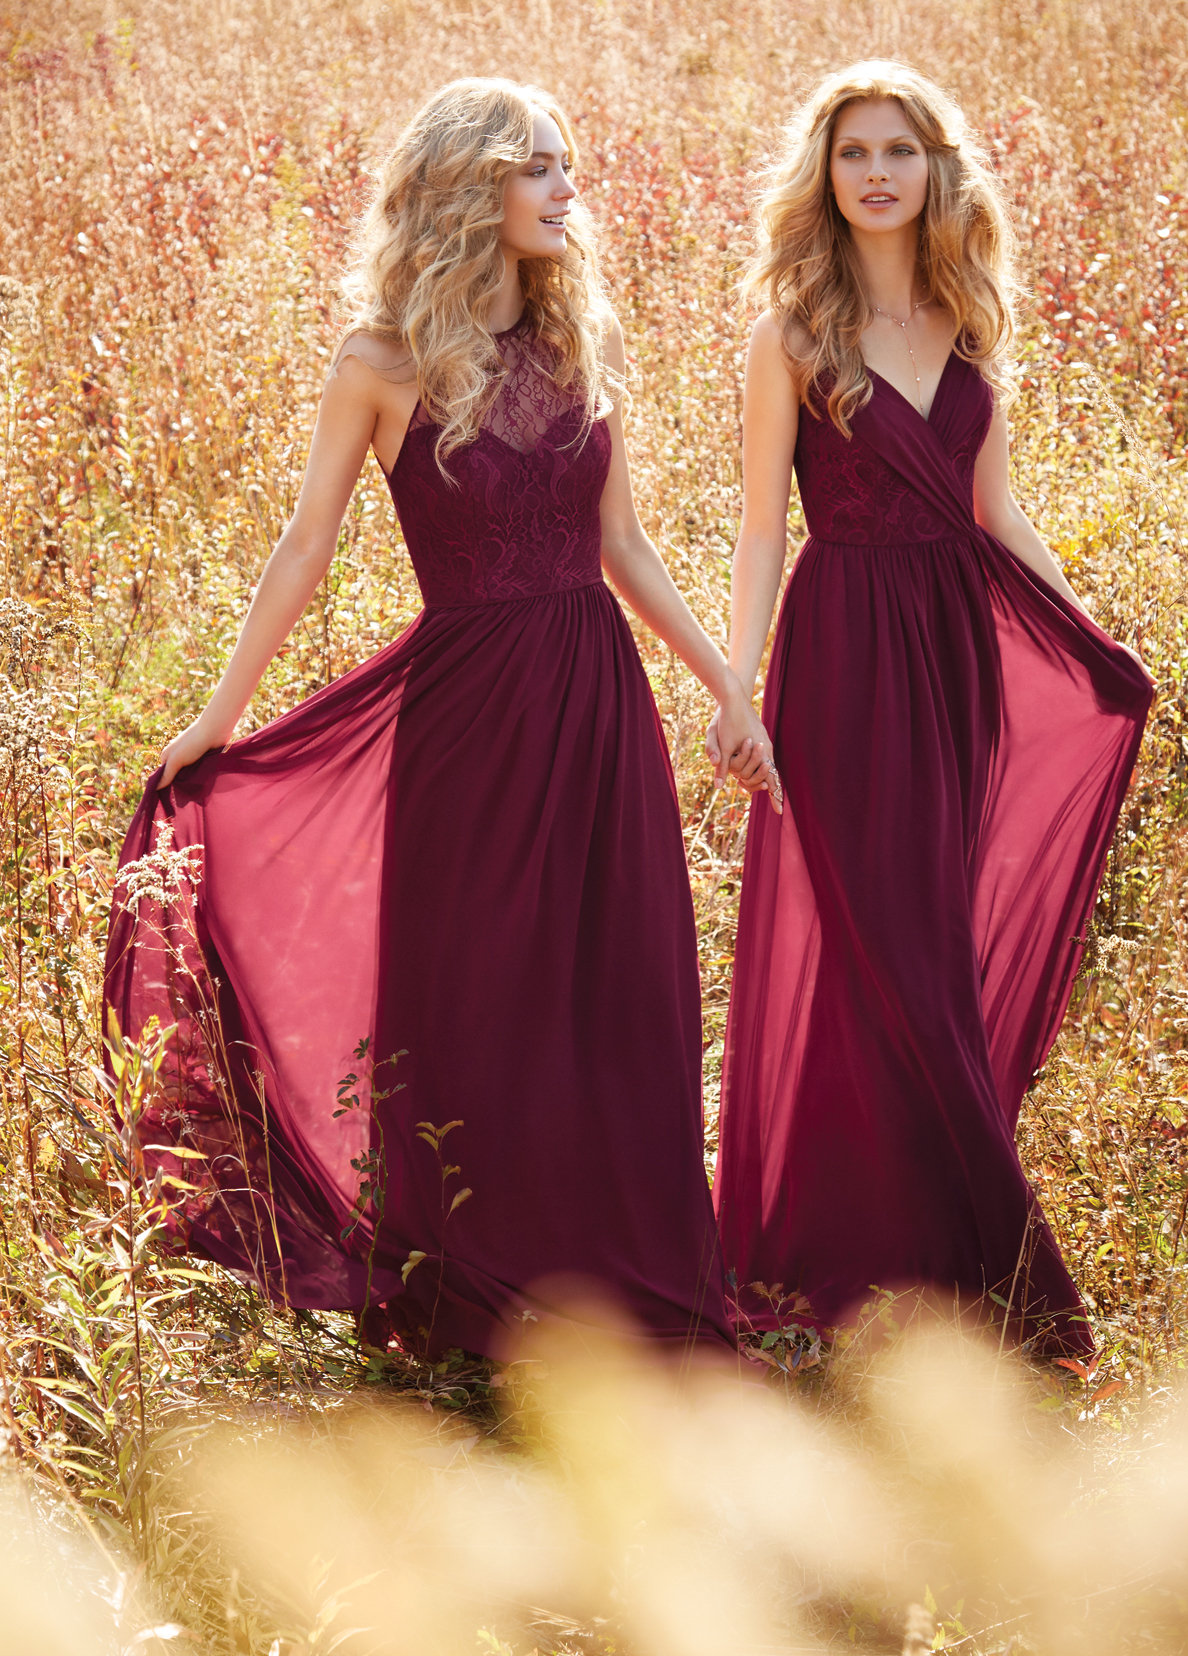 Bridesmaids special occasion dresses and bridal party gowns by style 5613 jlm pinterest icon ombrellifo Gallery